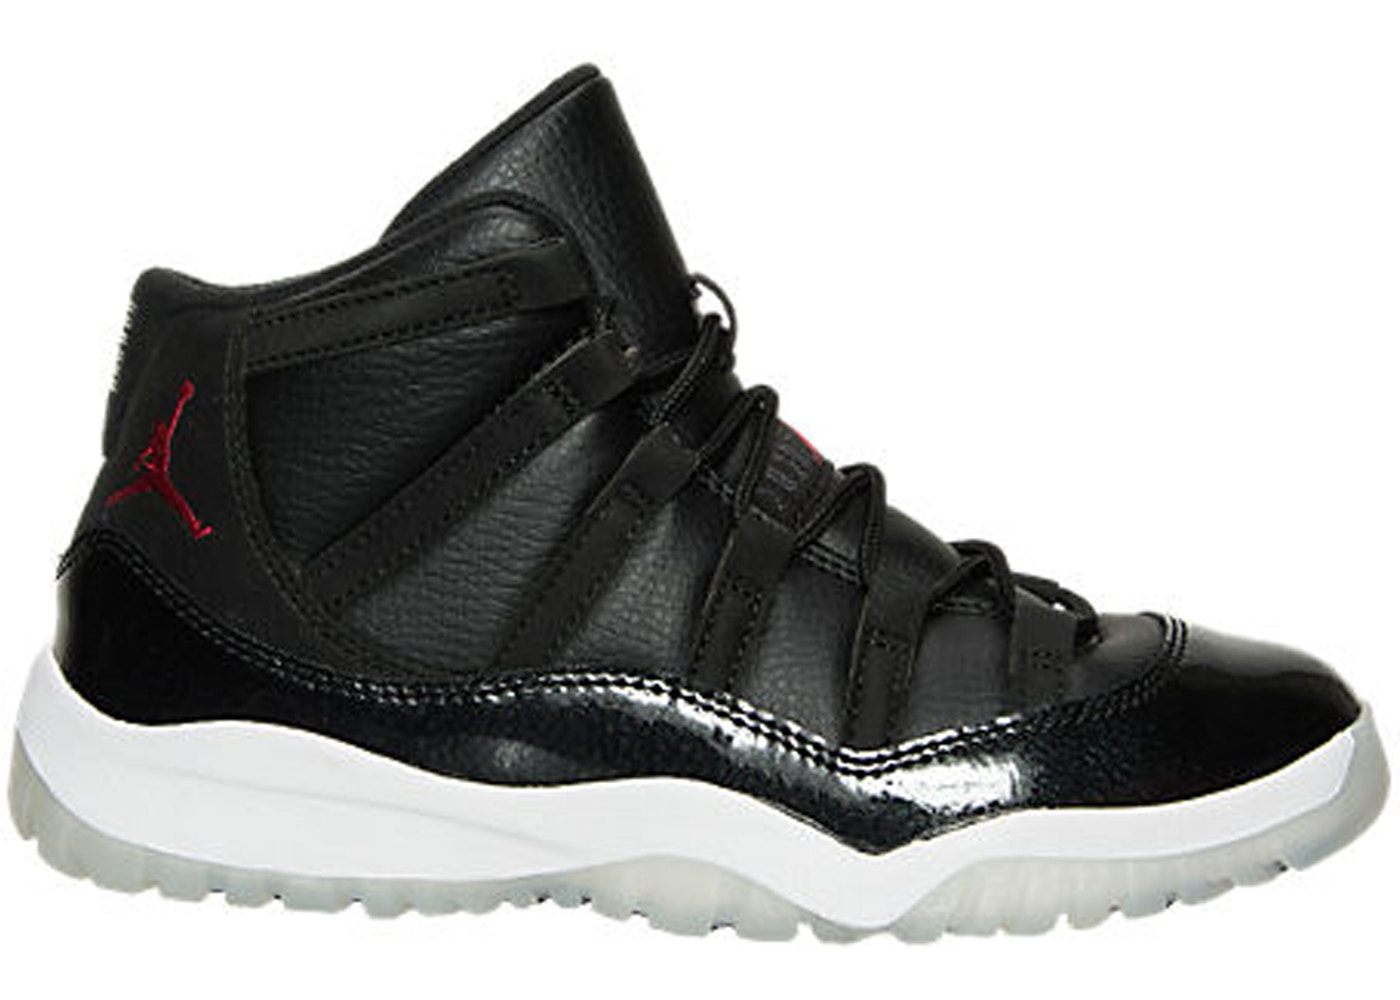 official photos a4c7f b6e65 Jordan 11 Retro 72-10 (PS)